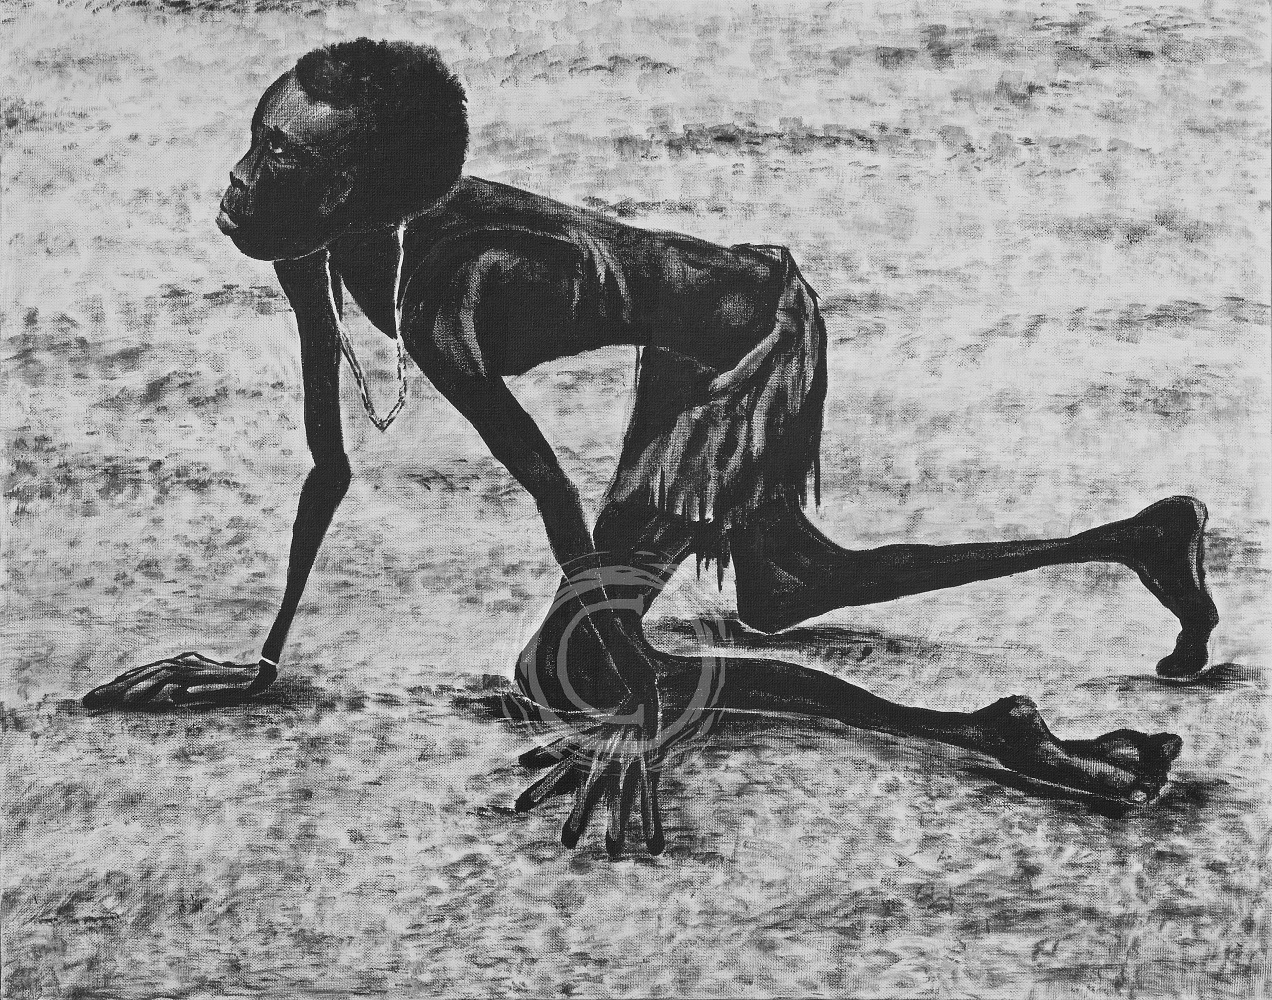 Sudan Famine 1998 Based off of the original photo by Tom Staddart, I was moved by the emotion expressed in the starving boy who had a bag of grain stolen from him by a fully dressed man in sandals. Decades later I am haunted by the knowledge this boy likely did not survive, and he would have been younger than me. Acrylic on Canvas.